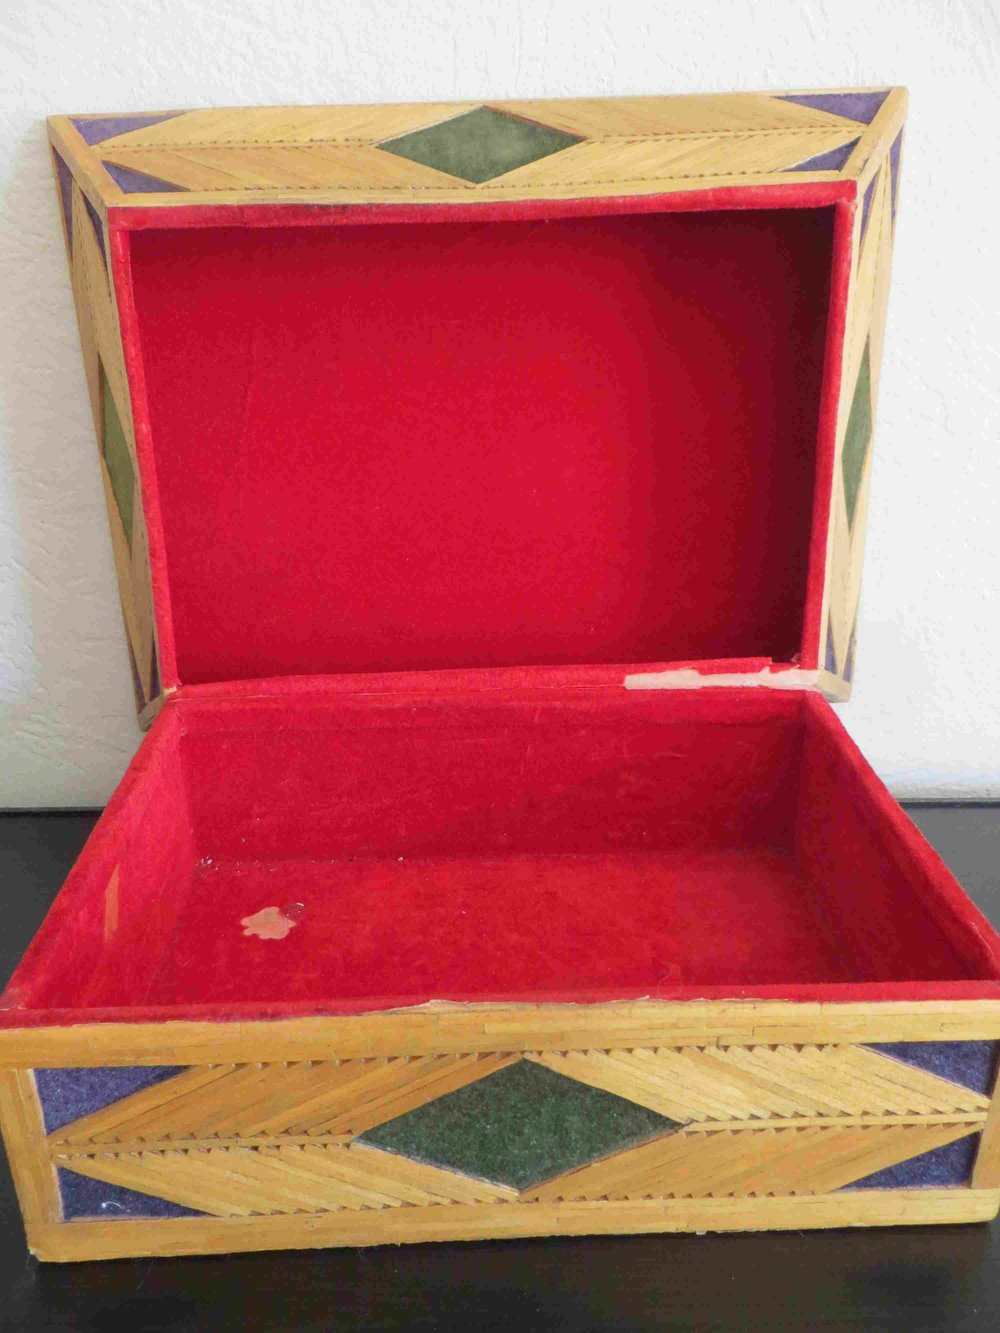 Vintage Inmate Matchstick Jewelry Box-012 - Copy.jpg